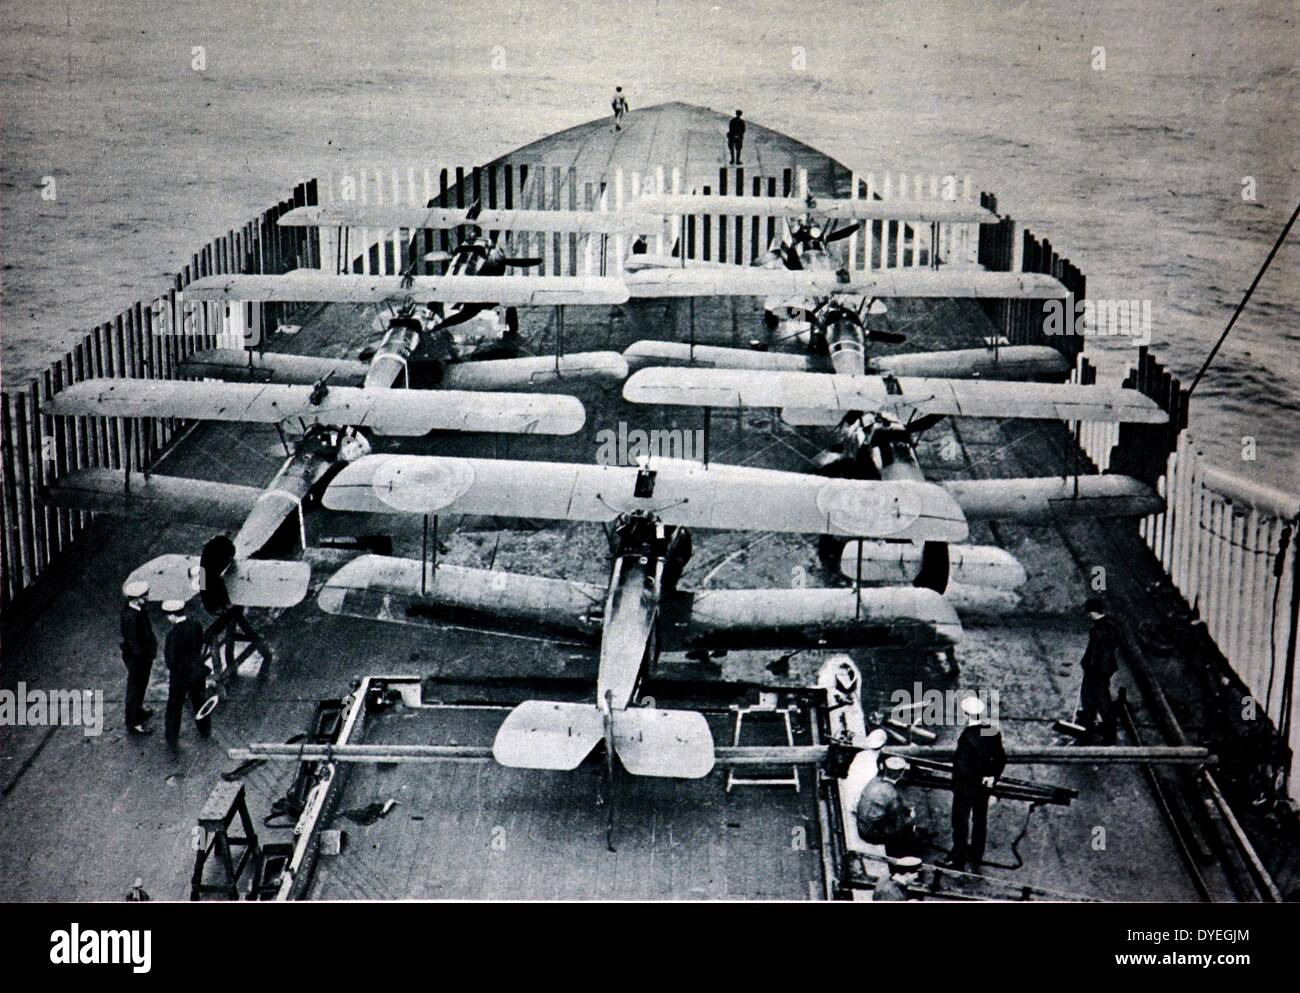 Aeroplanes aboard H.M.S. Furious - Stock Image